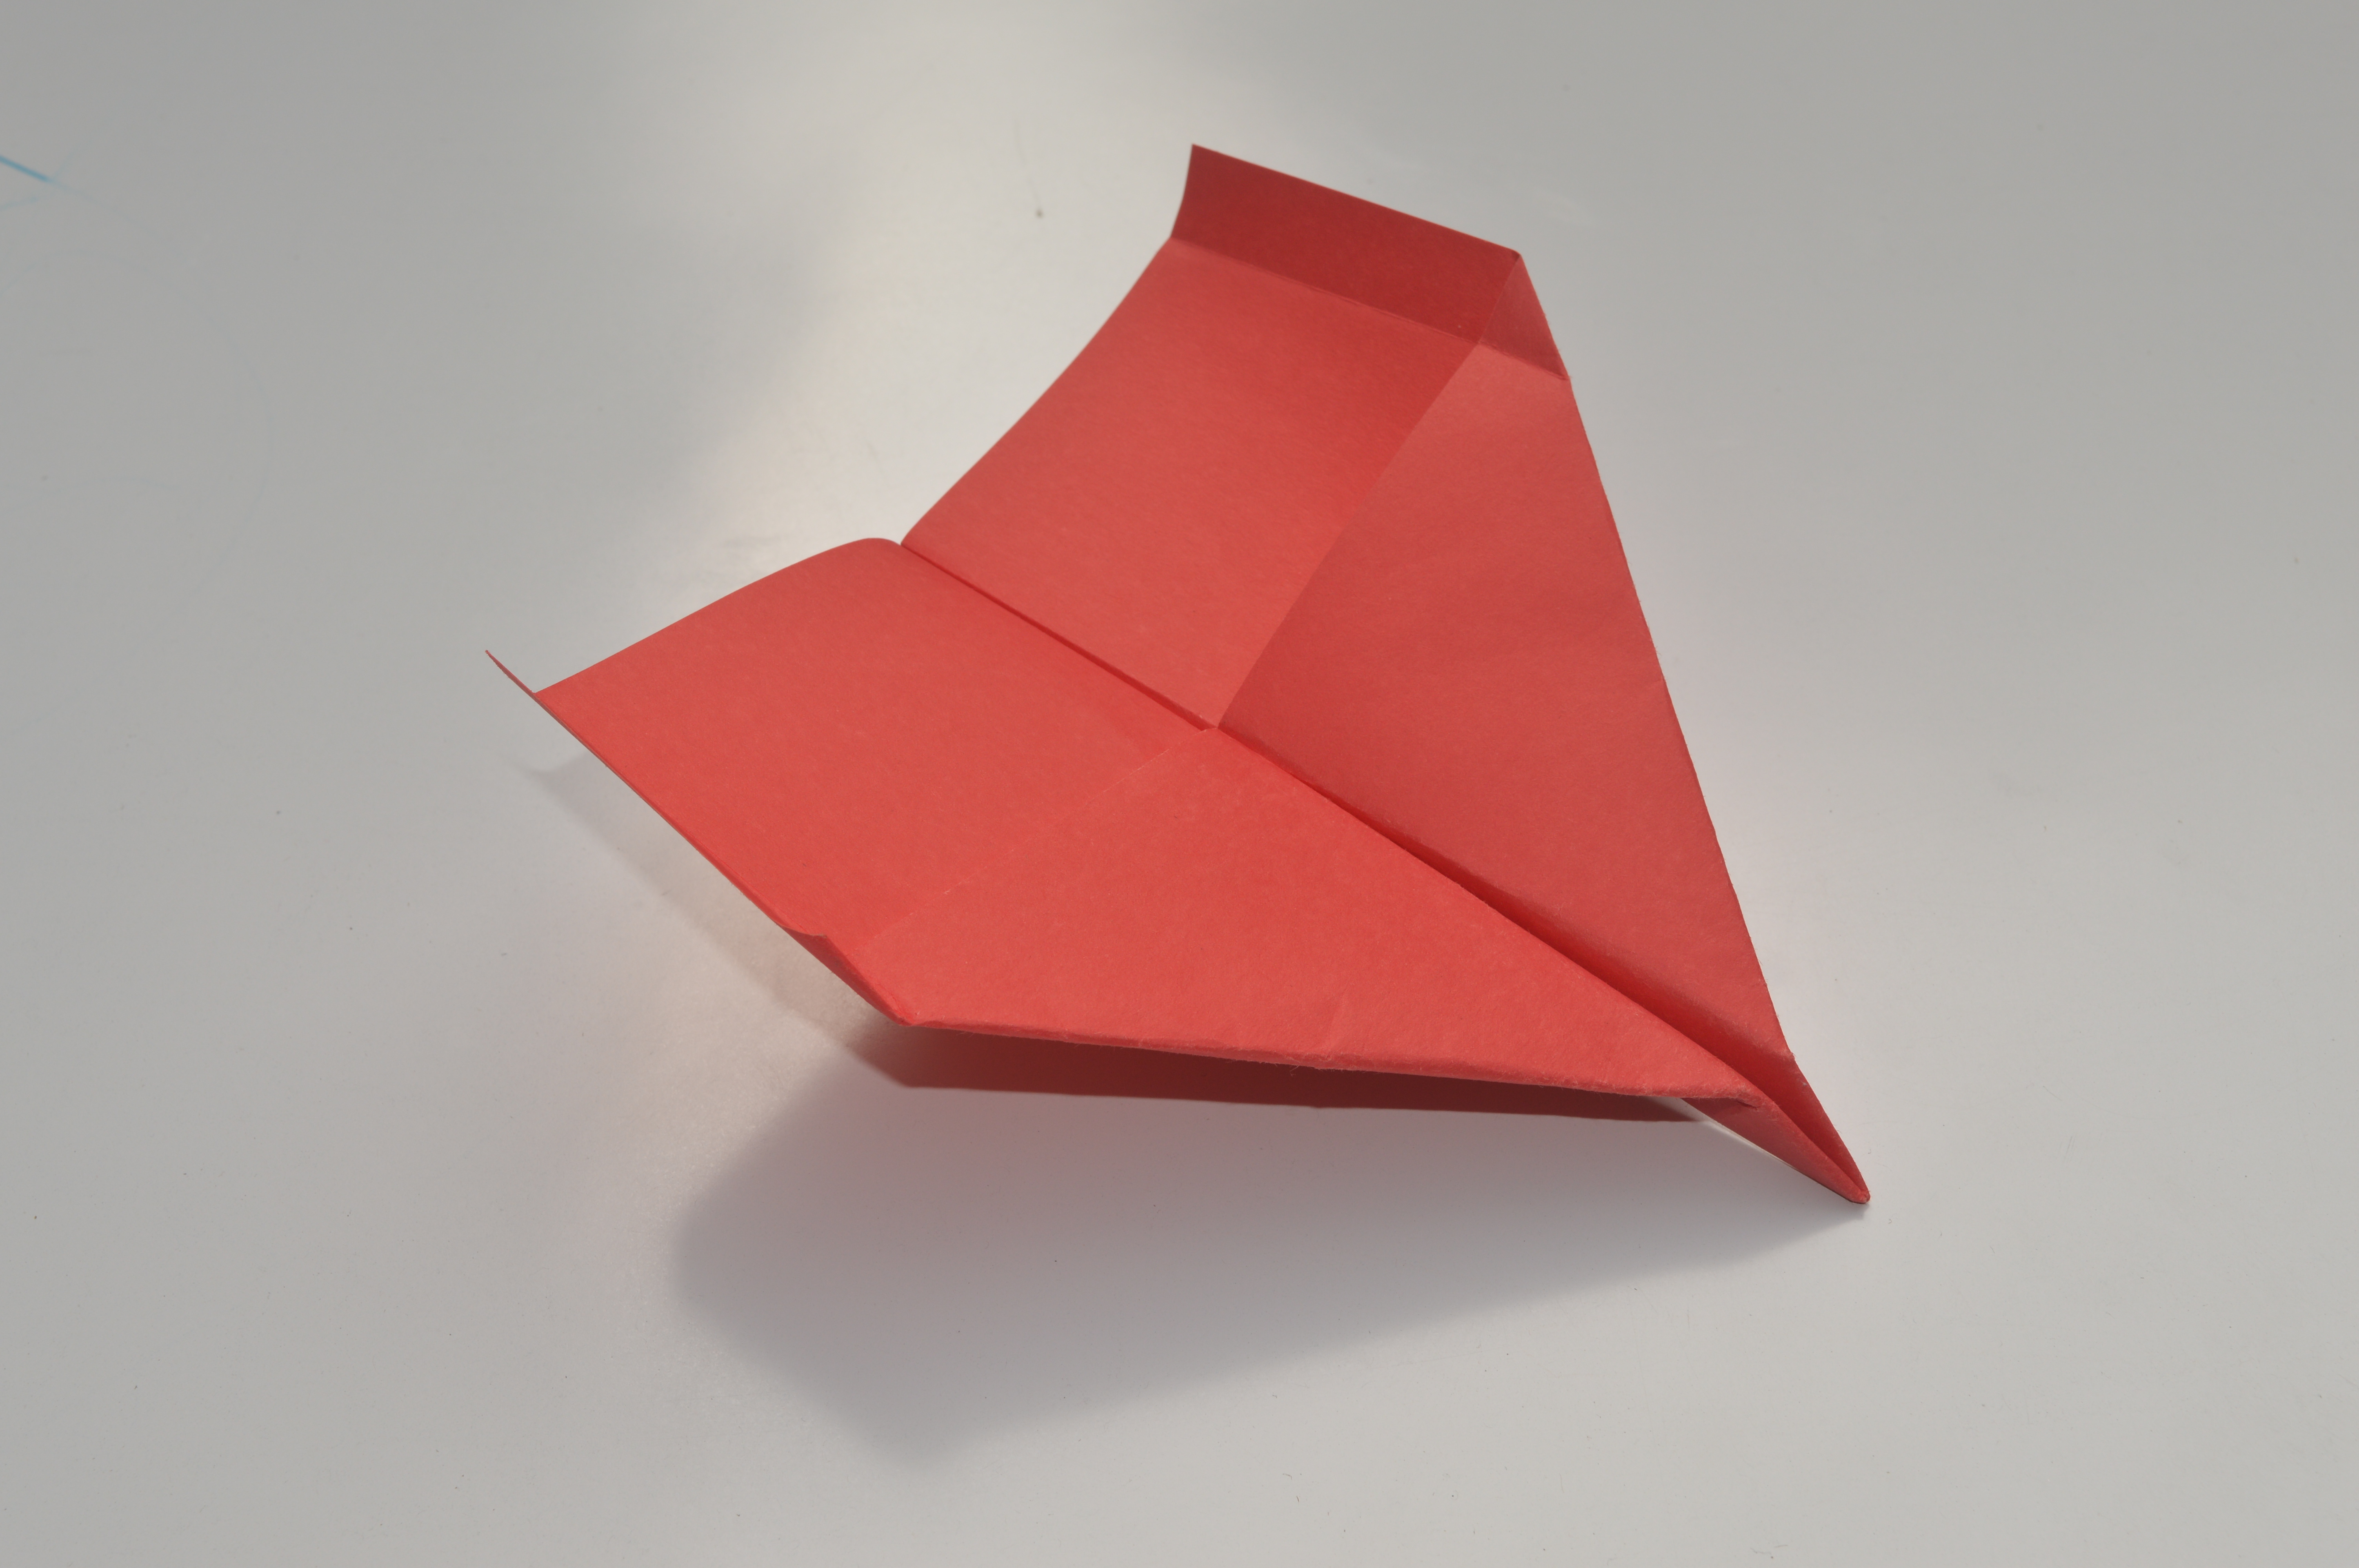 Https://www.instructables.com/Paper-Airplane-Glider-3/                                   Https://www.instructables.com/How-To-Make-A-Dart-Airplane/                                            Https://www.instructables.com/Paper-Airplane-27/